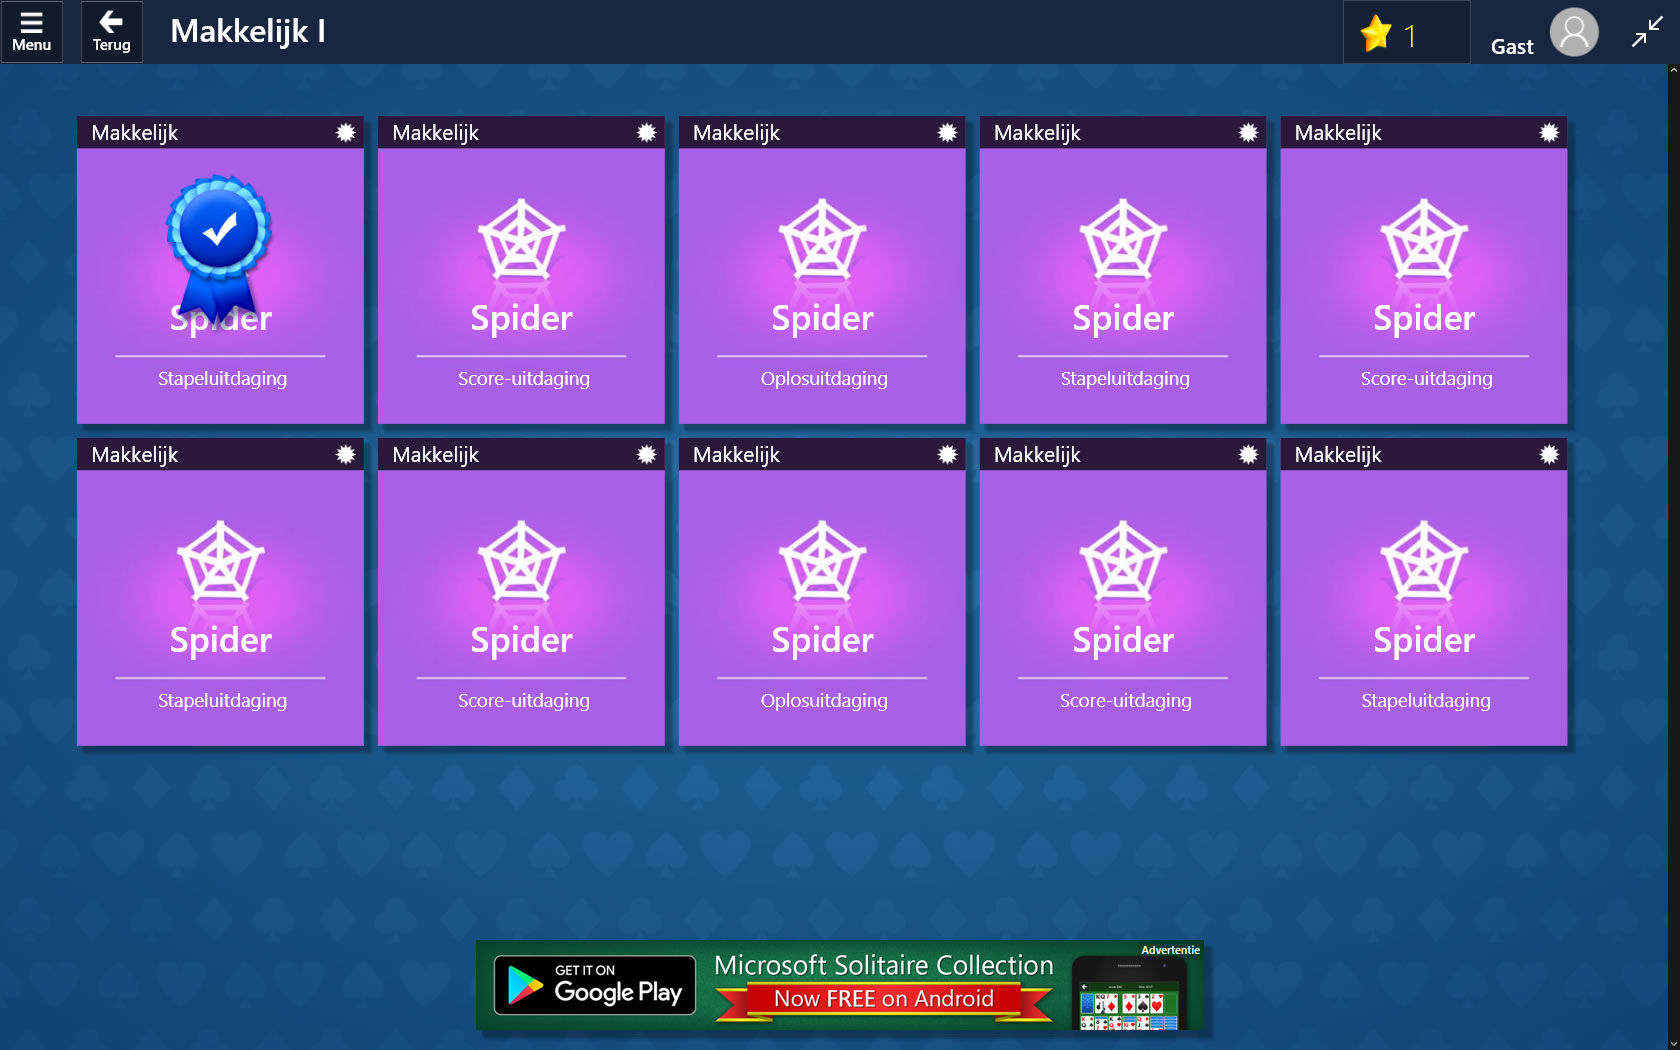 Microsoft Solitaire Collection Screenshots for Windows Apps